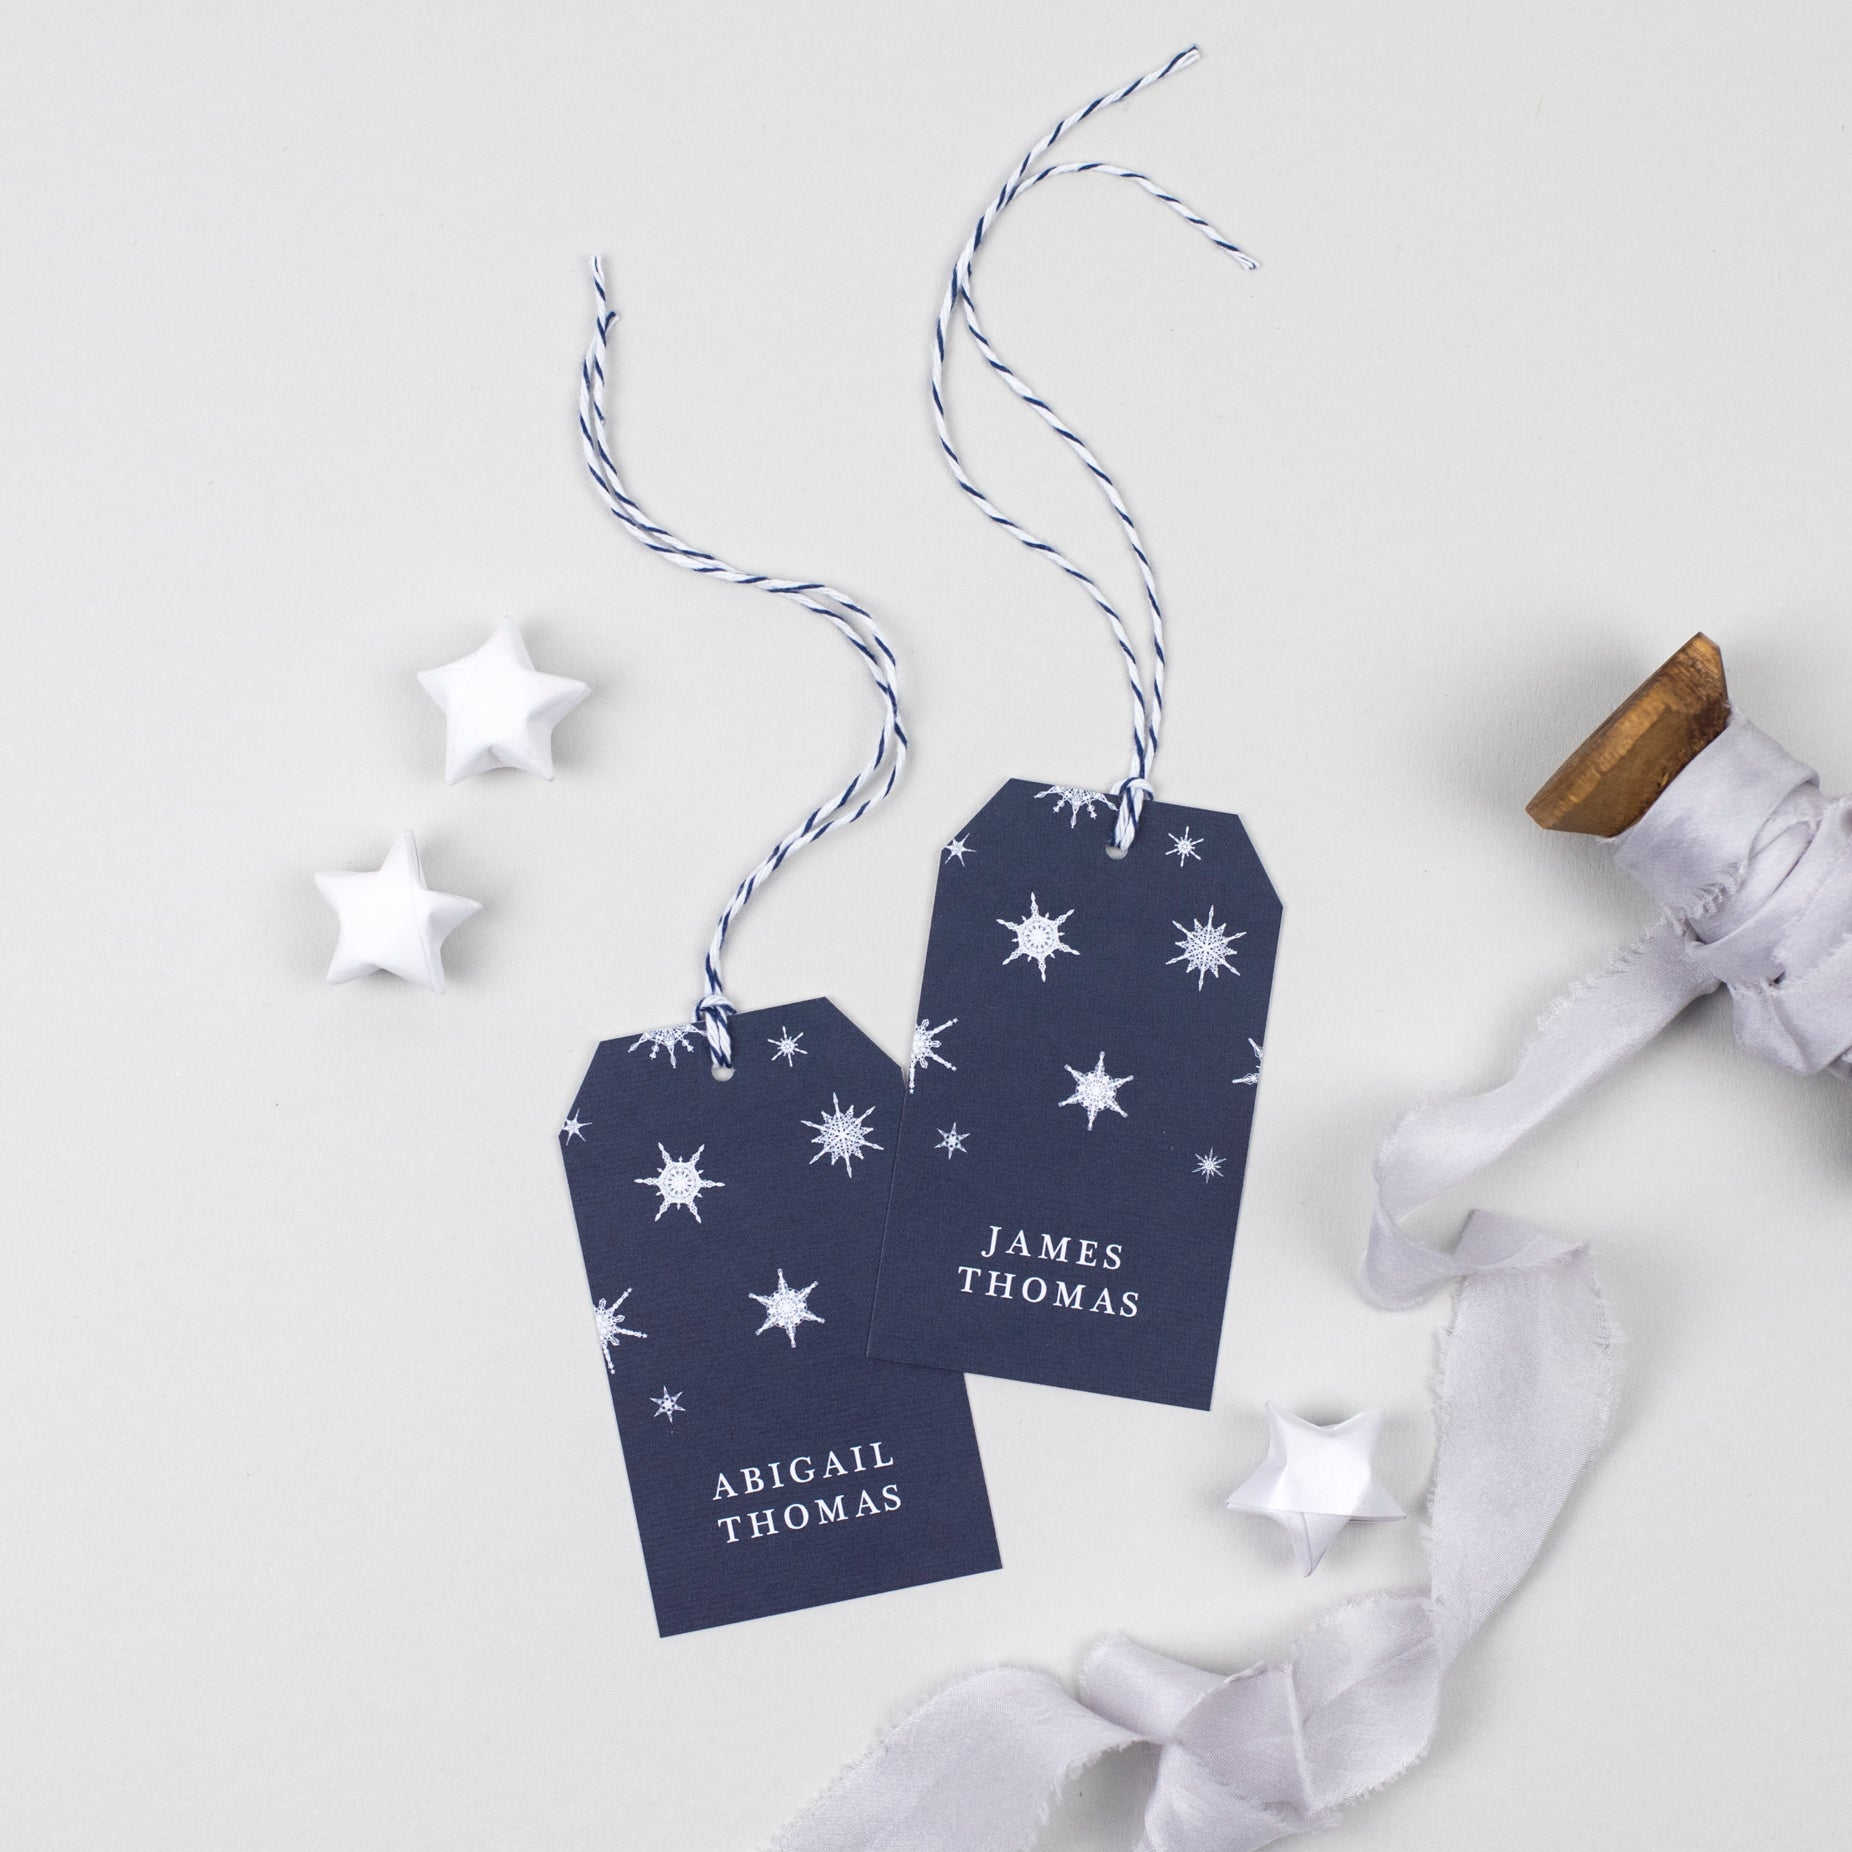 Winter Place Card Tags - Pear Paper Co